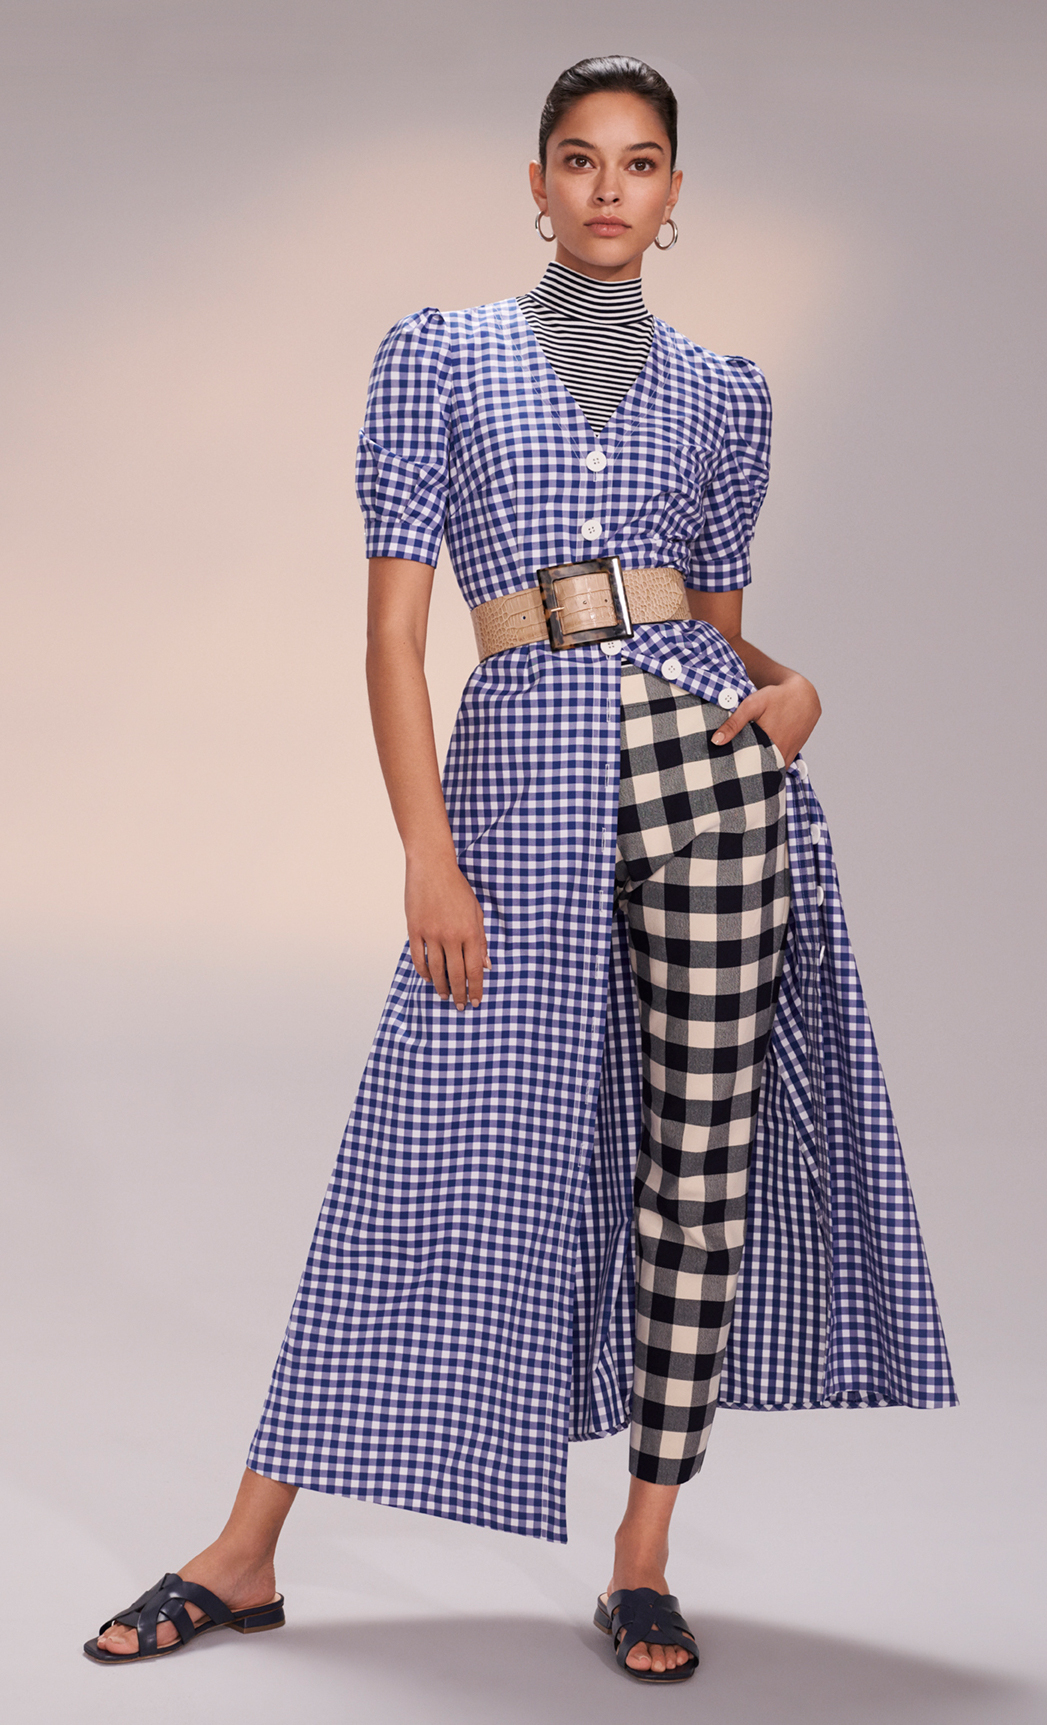 Model poses in blue gingham midi dress styled with trousers and navy sandals